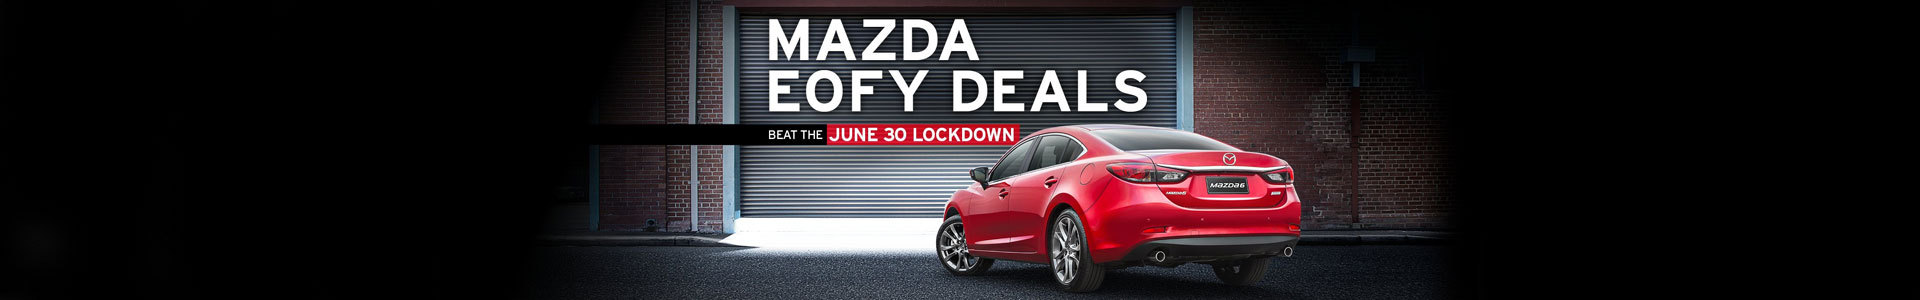 EOFY Deals - Beat the June 30 Lockdown